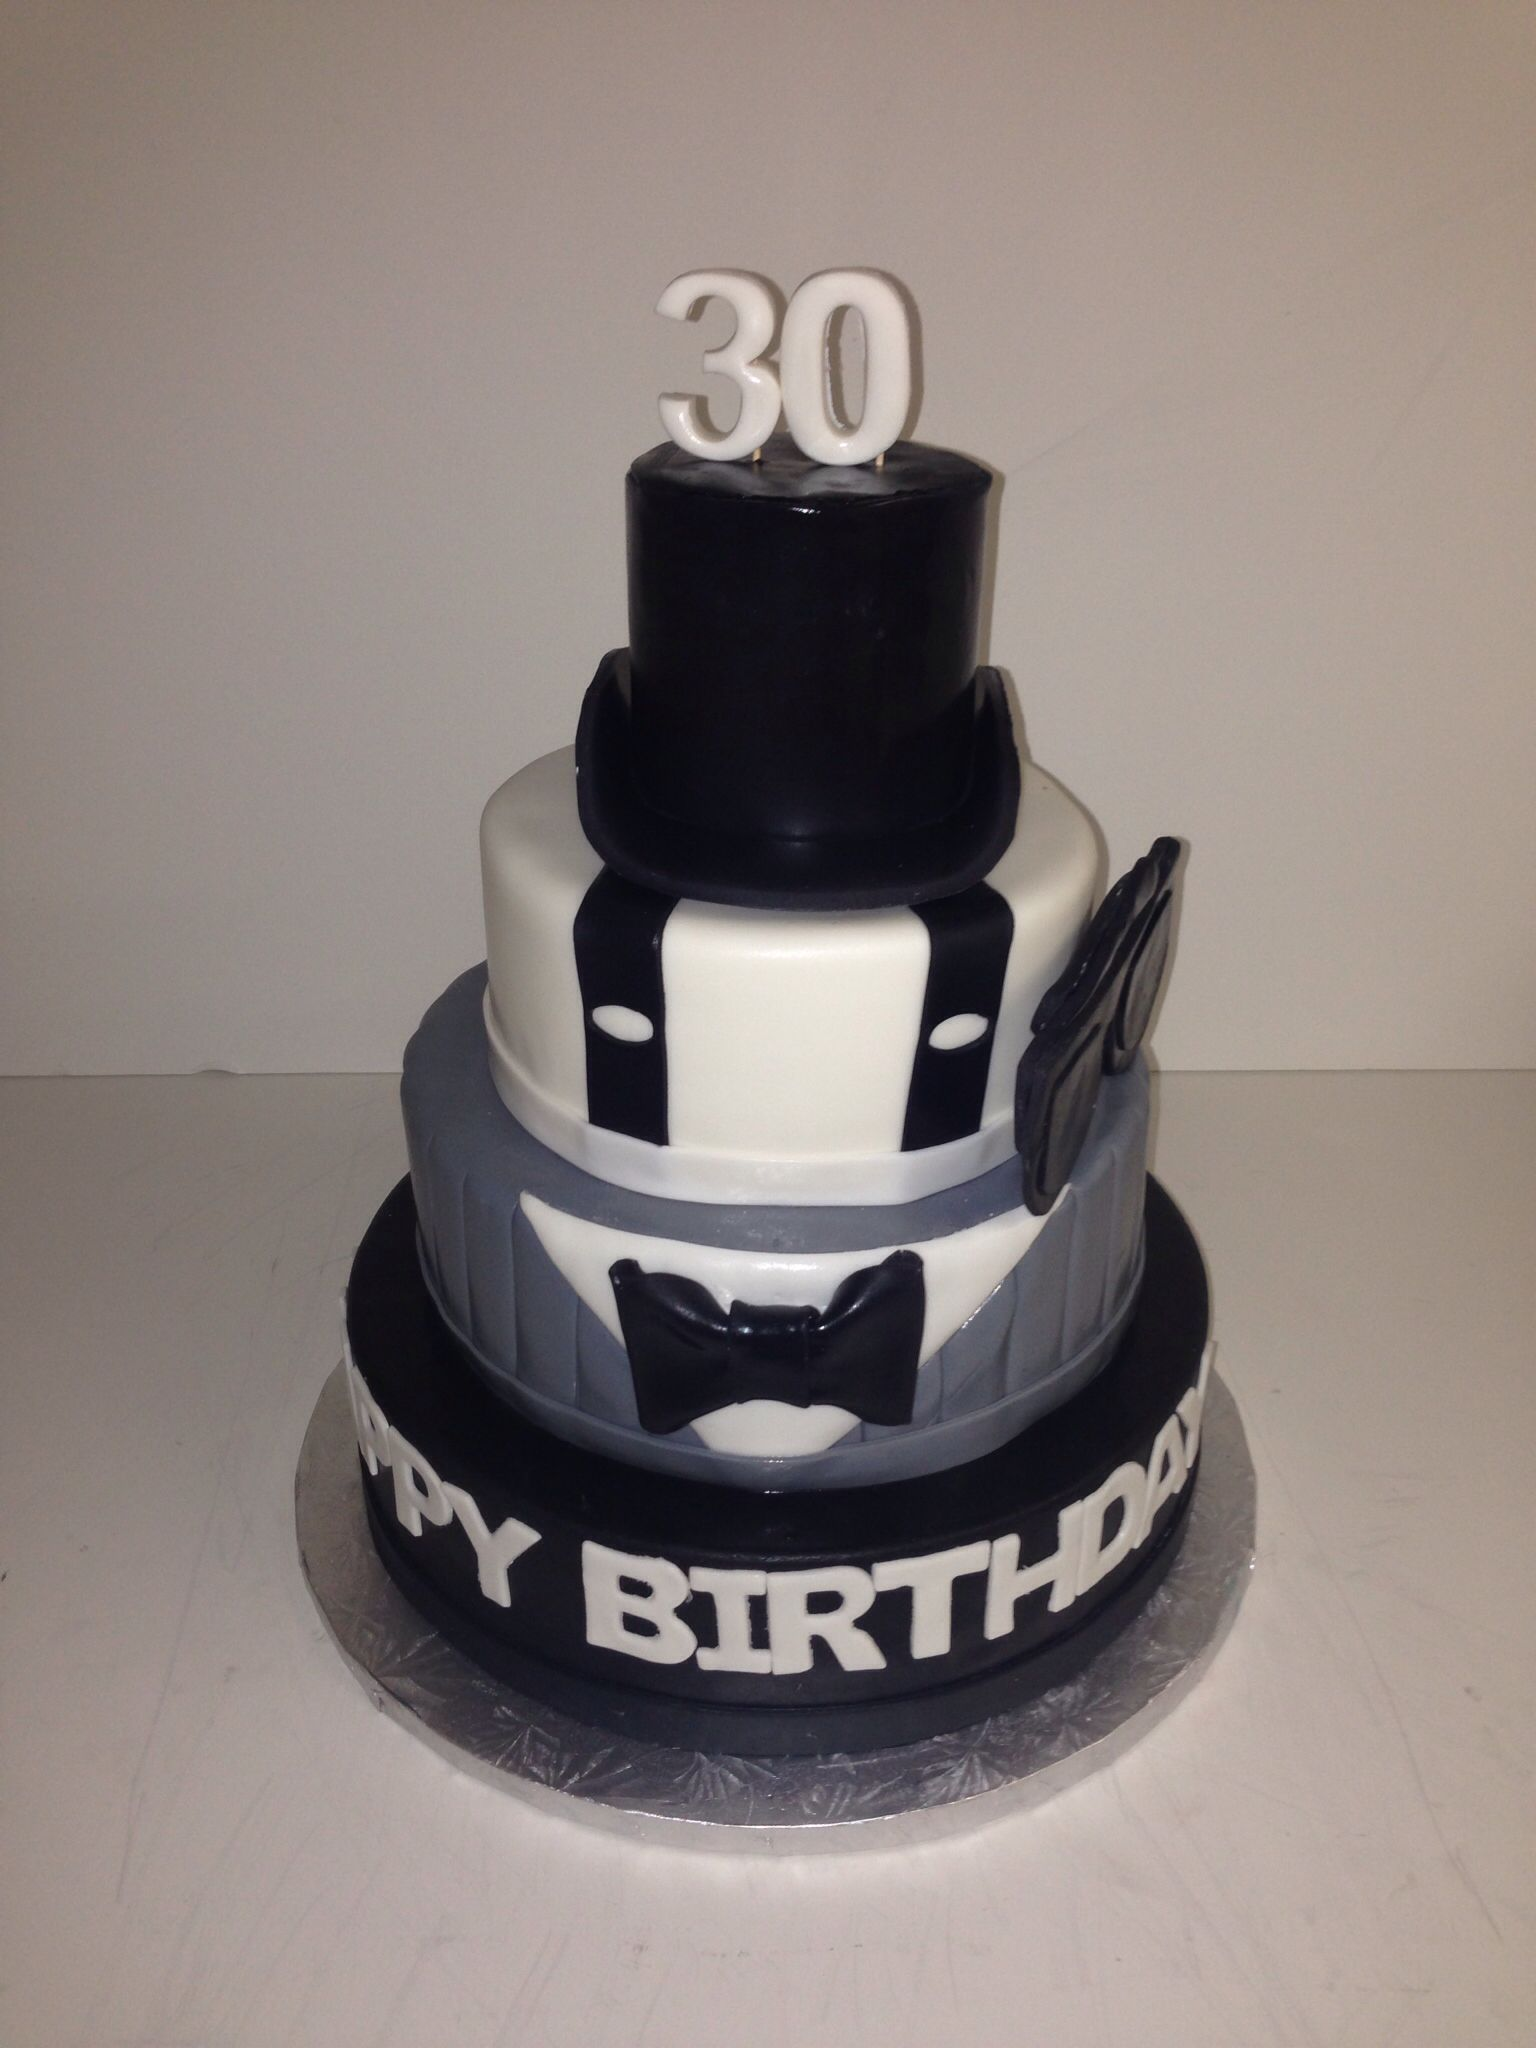 30th Birthday Cakes For Men | www.pixshark.com - Images Galleries With A Bite!